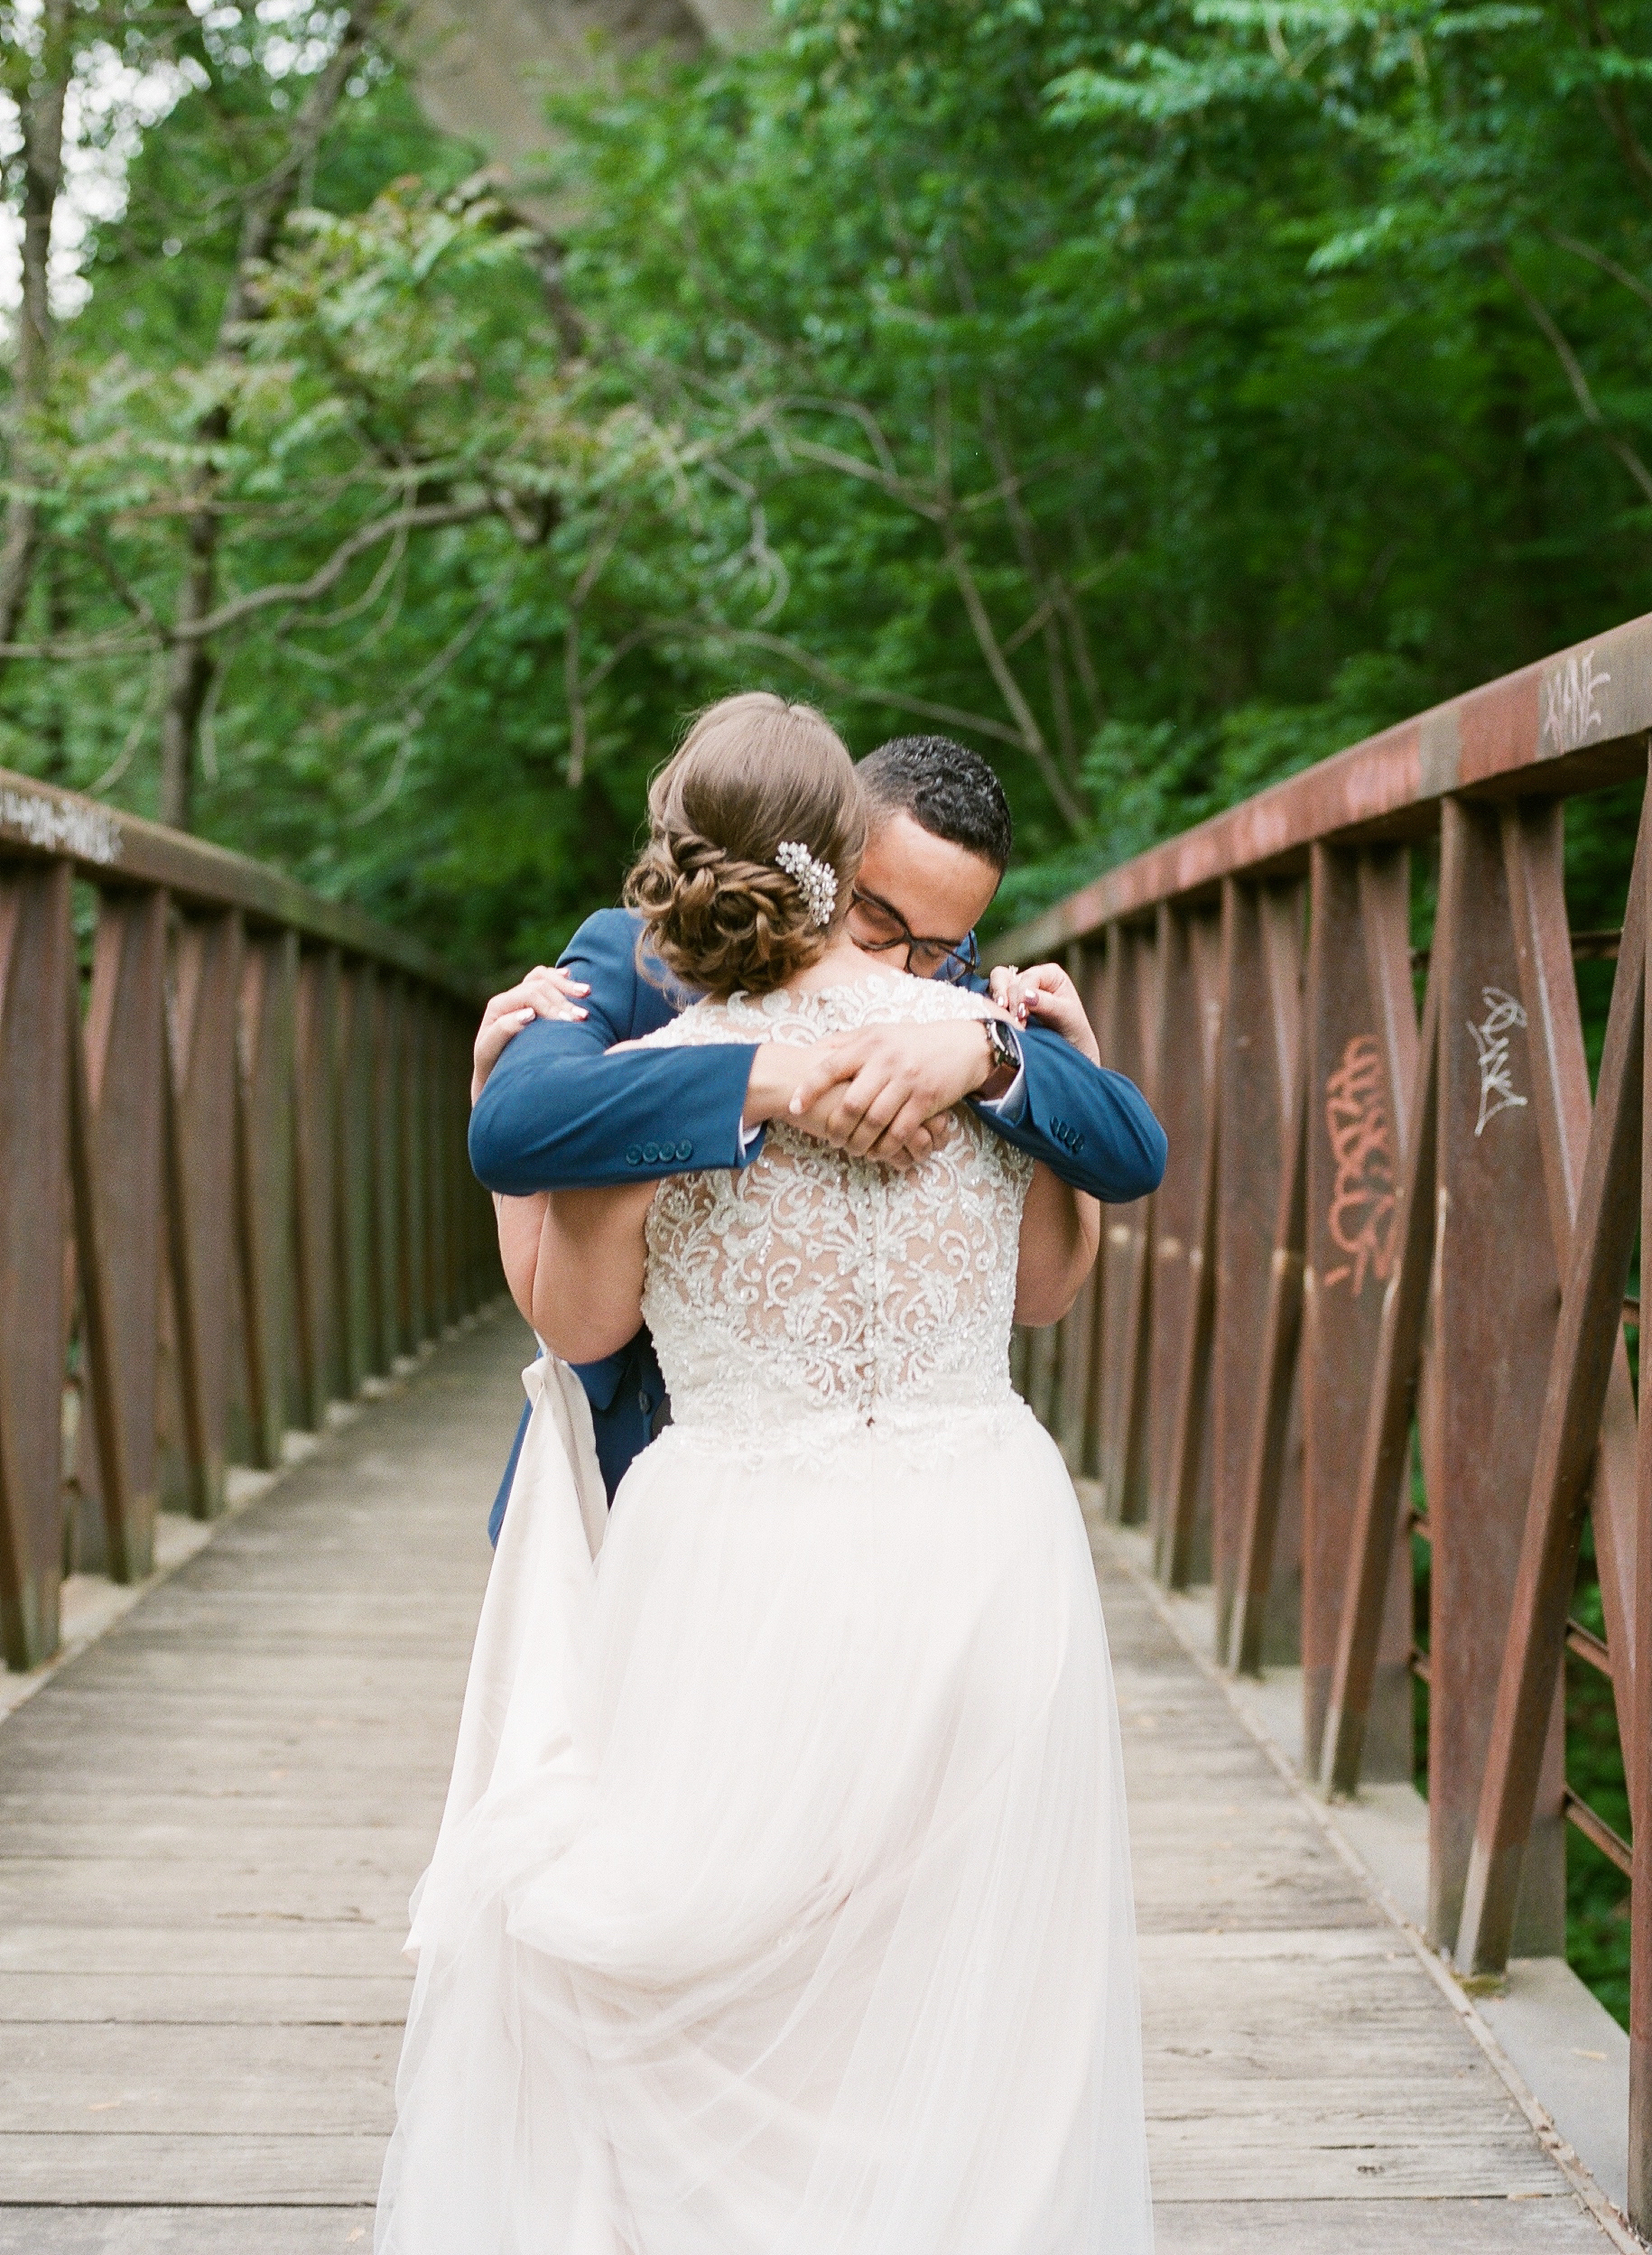 WISSAHICKON PARK WEDDING PORTRAITS